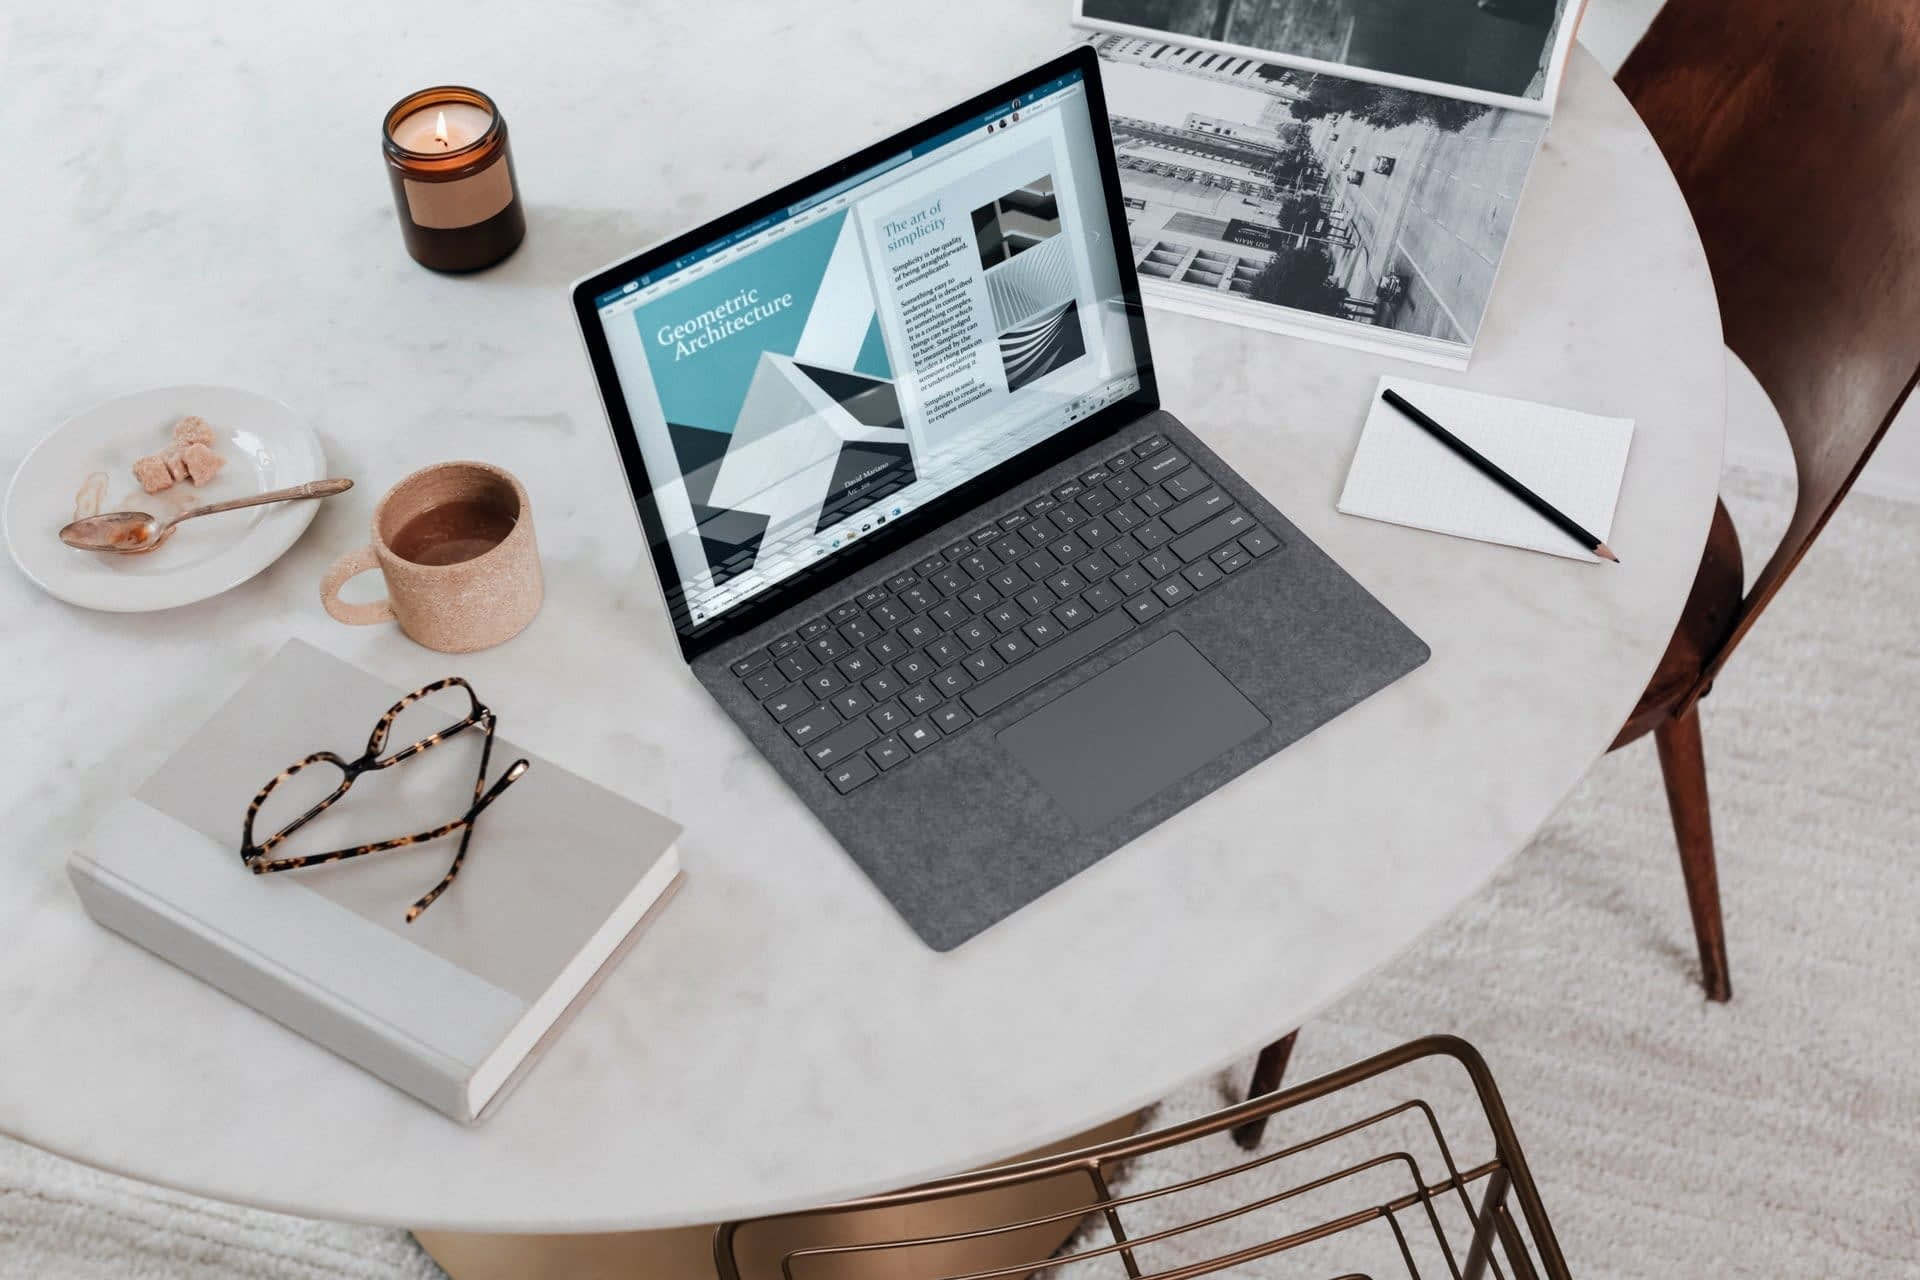 9 Best Laptop for Graphic design and Video editing